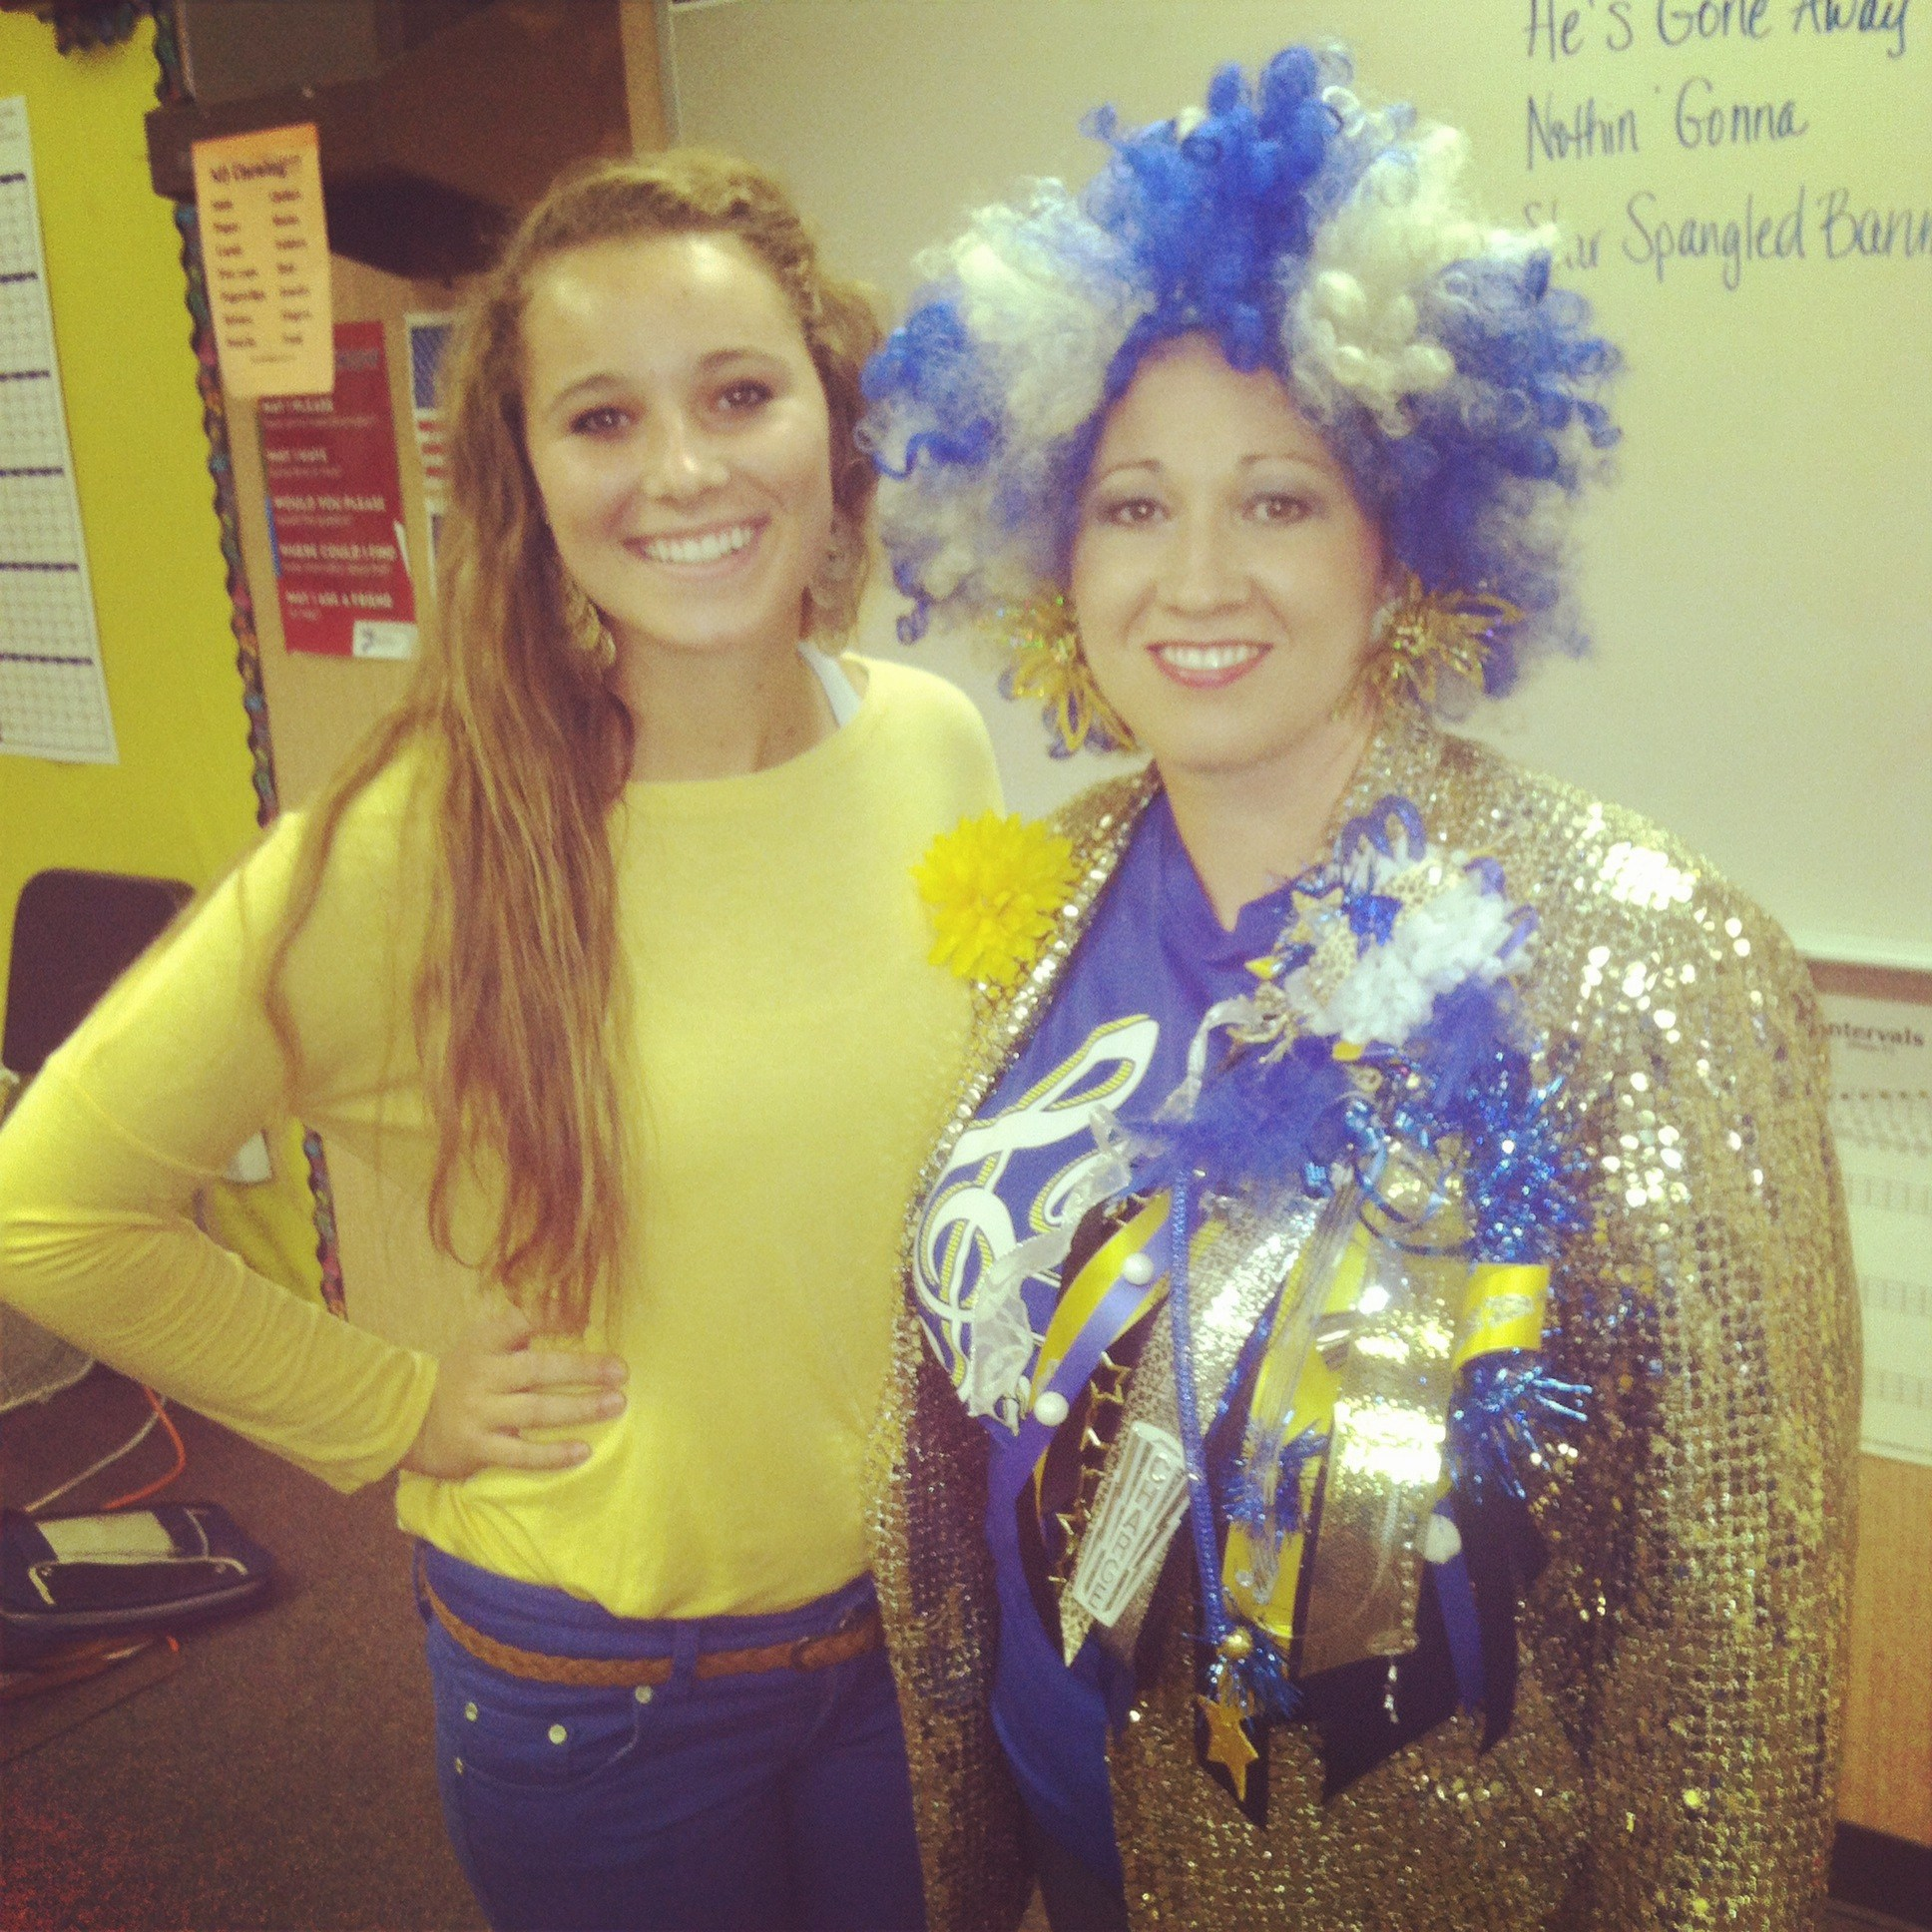 Crazy Blue and Gold Day